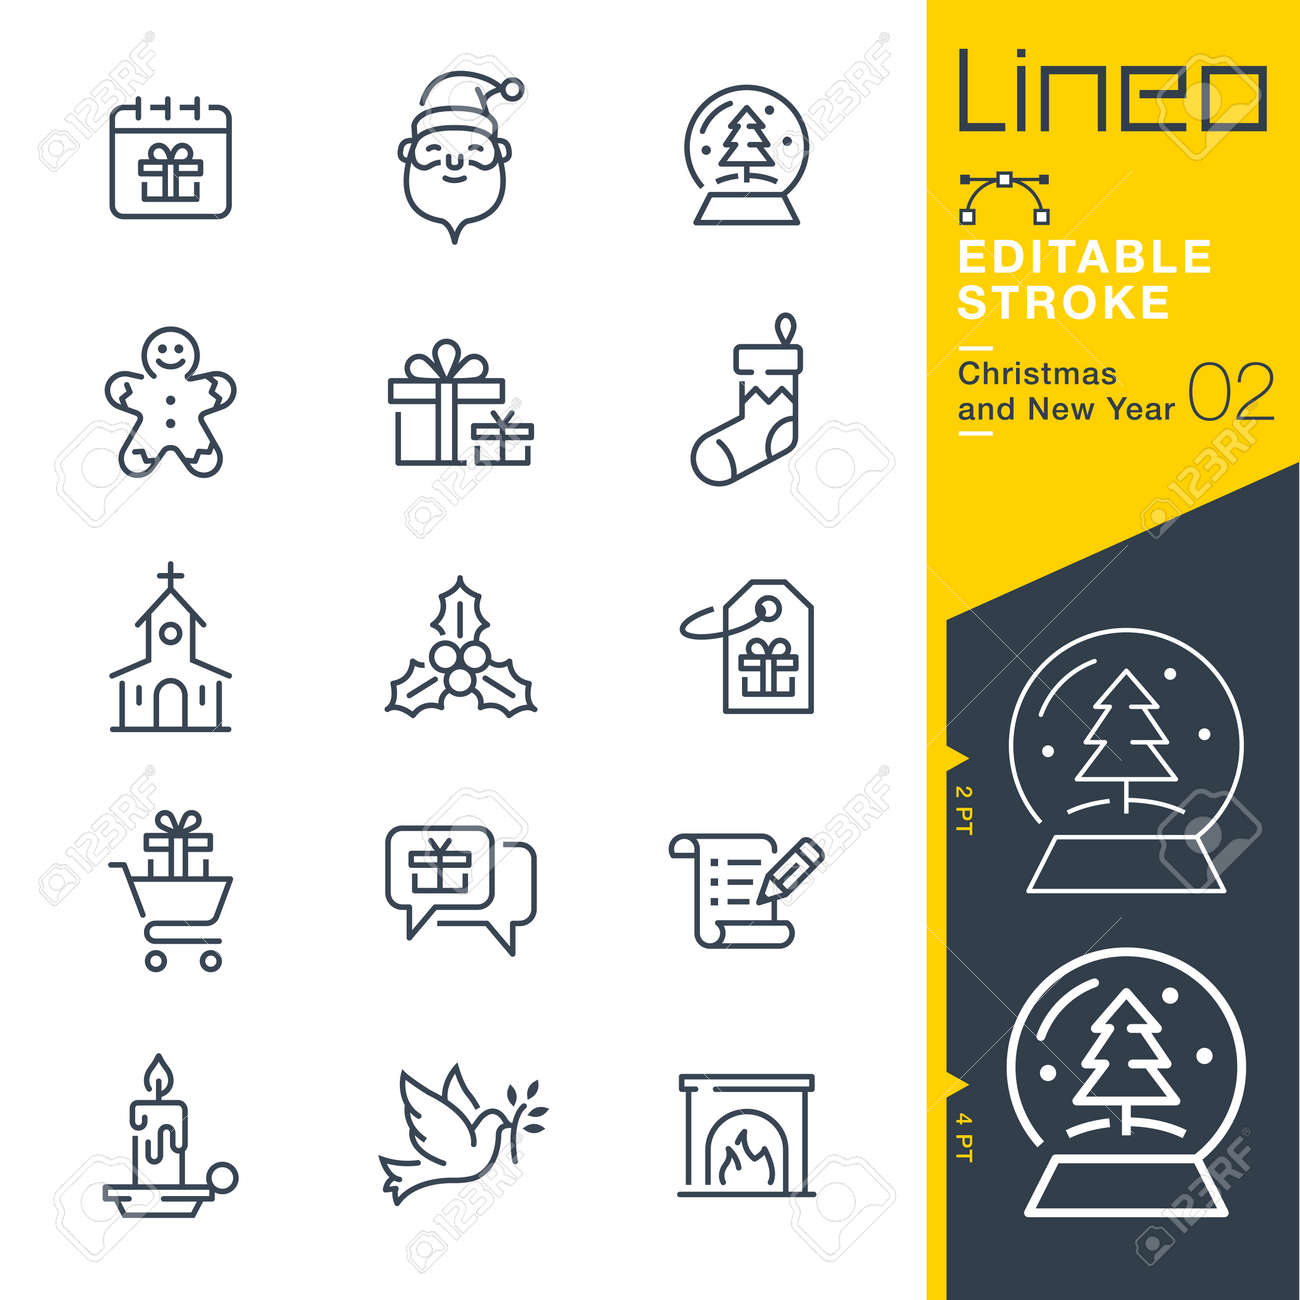 Lineo Editable Stroke - Christmas and New Year line icon Vector Icons - Adjust stroke weight - Change to any color - 87431924